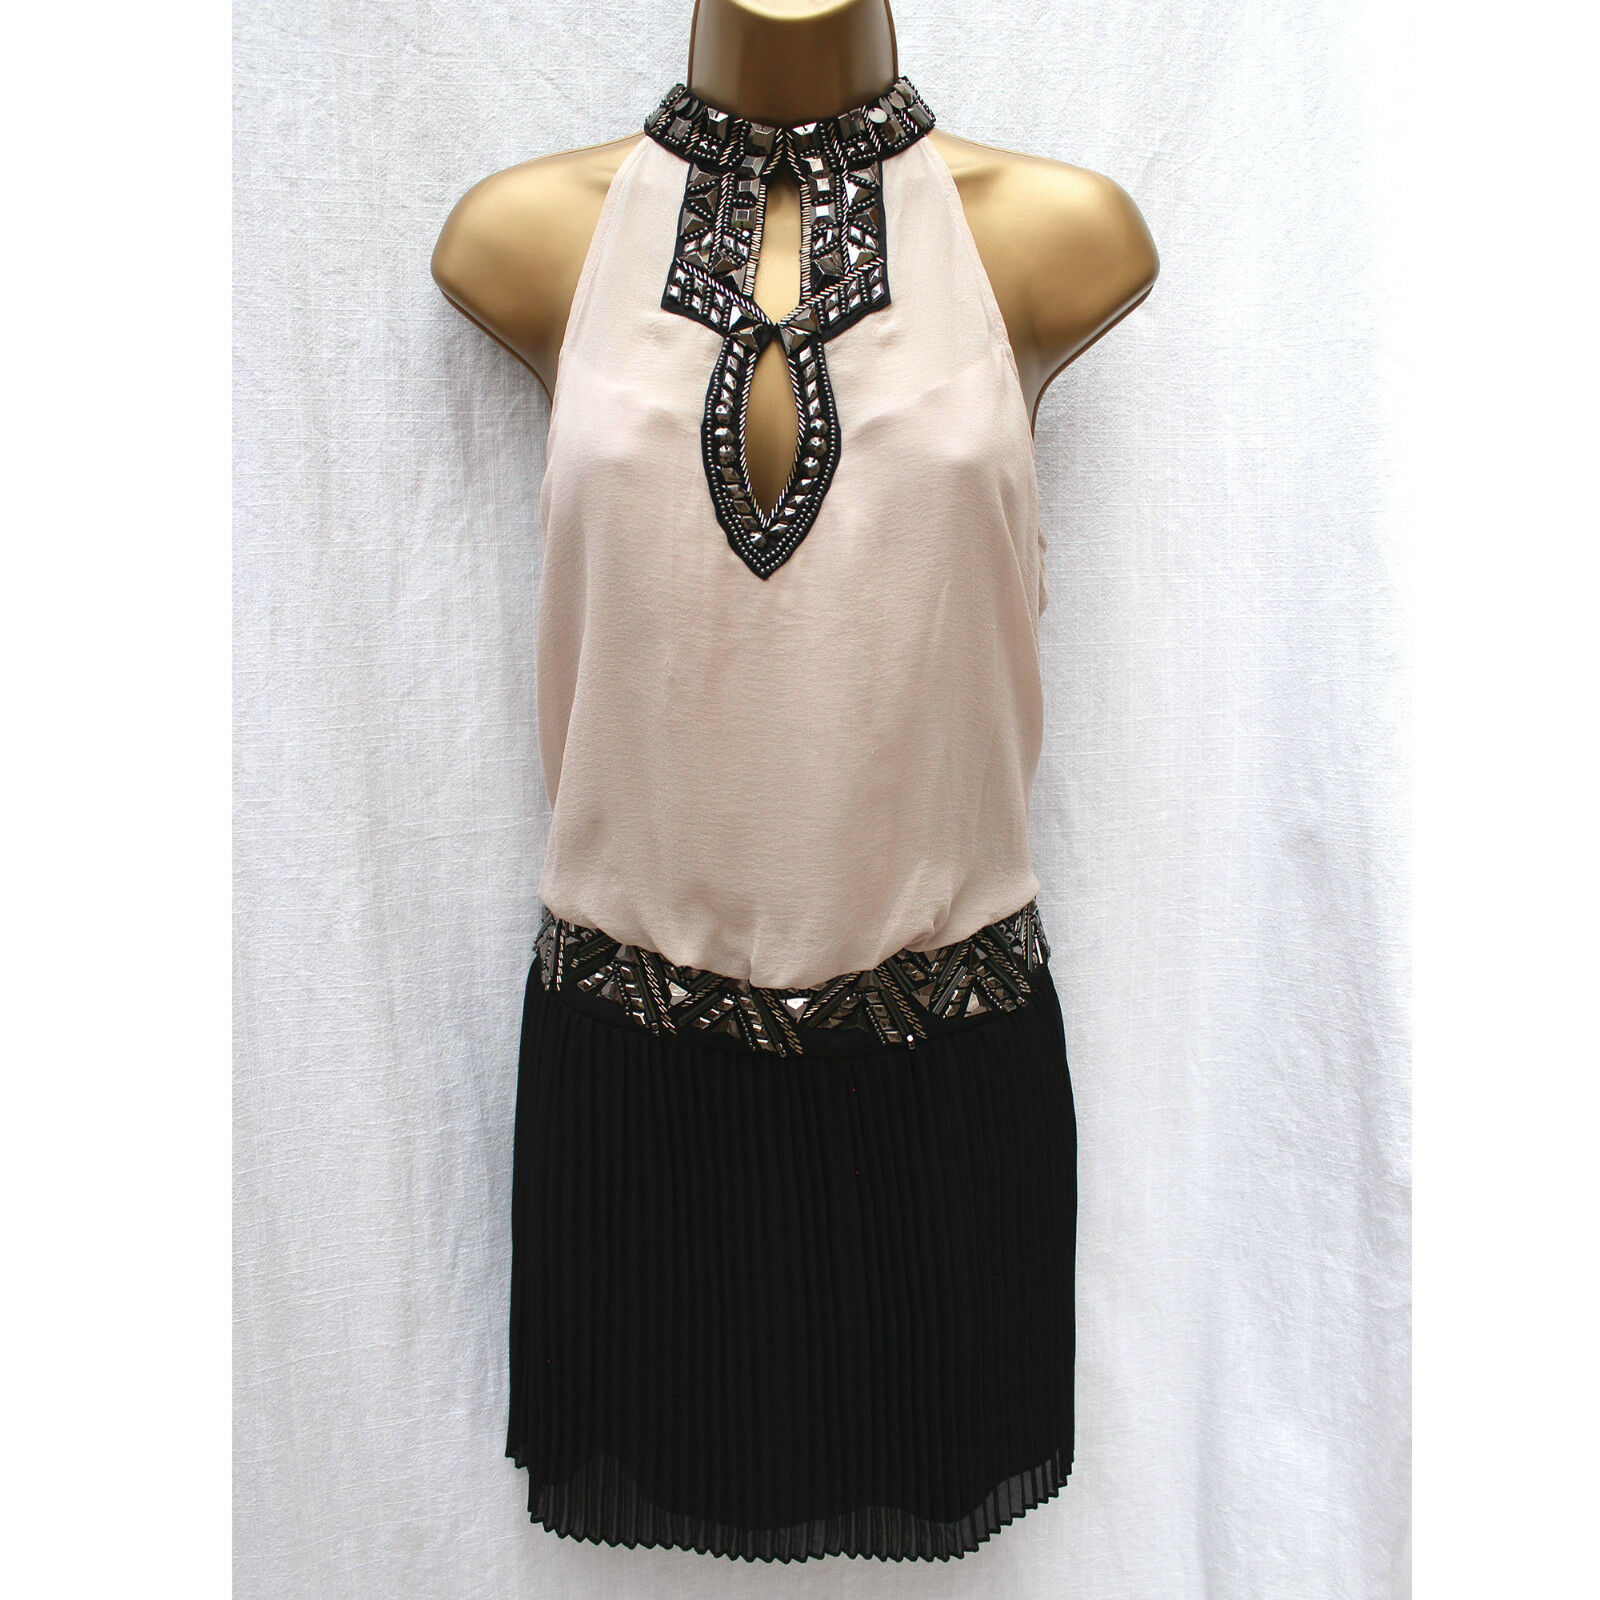 KAREN MILLEN DP311 schwarz Cream Silk Beaded 20's Deco Flapper Gatsby Dress